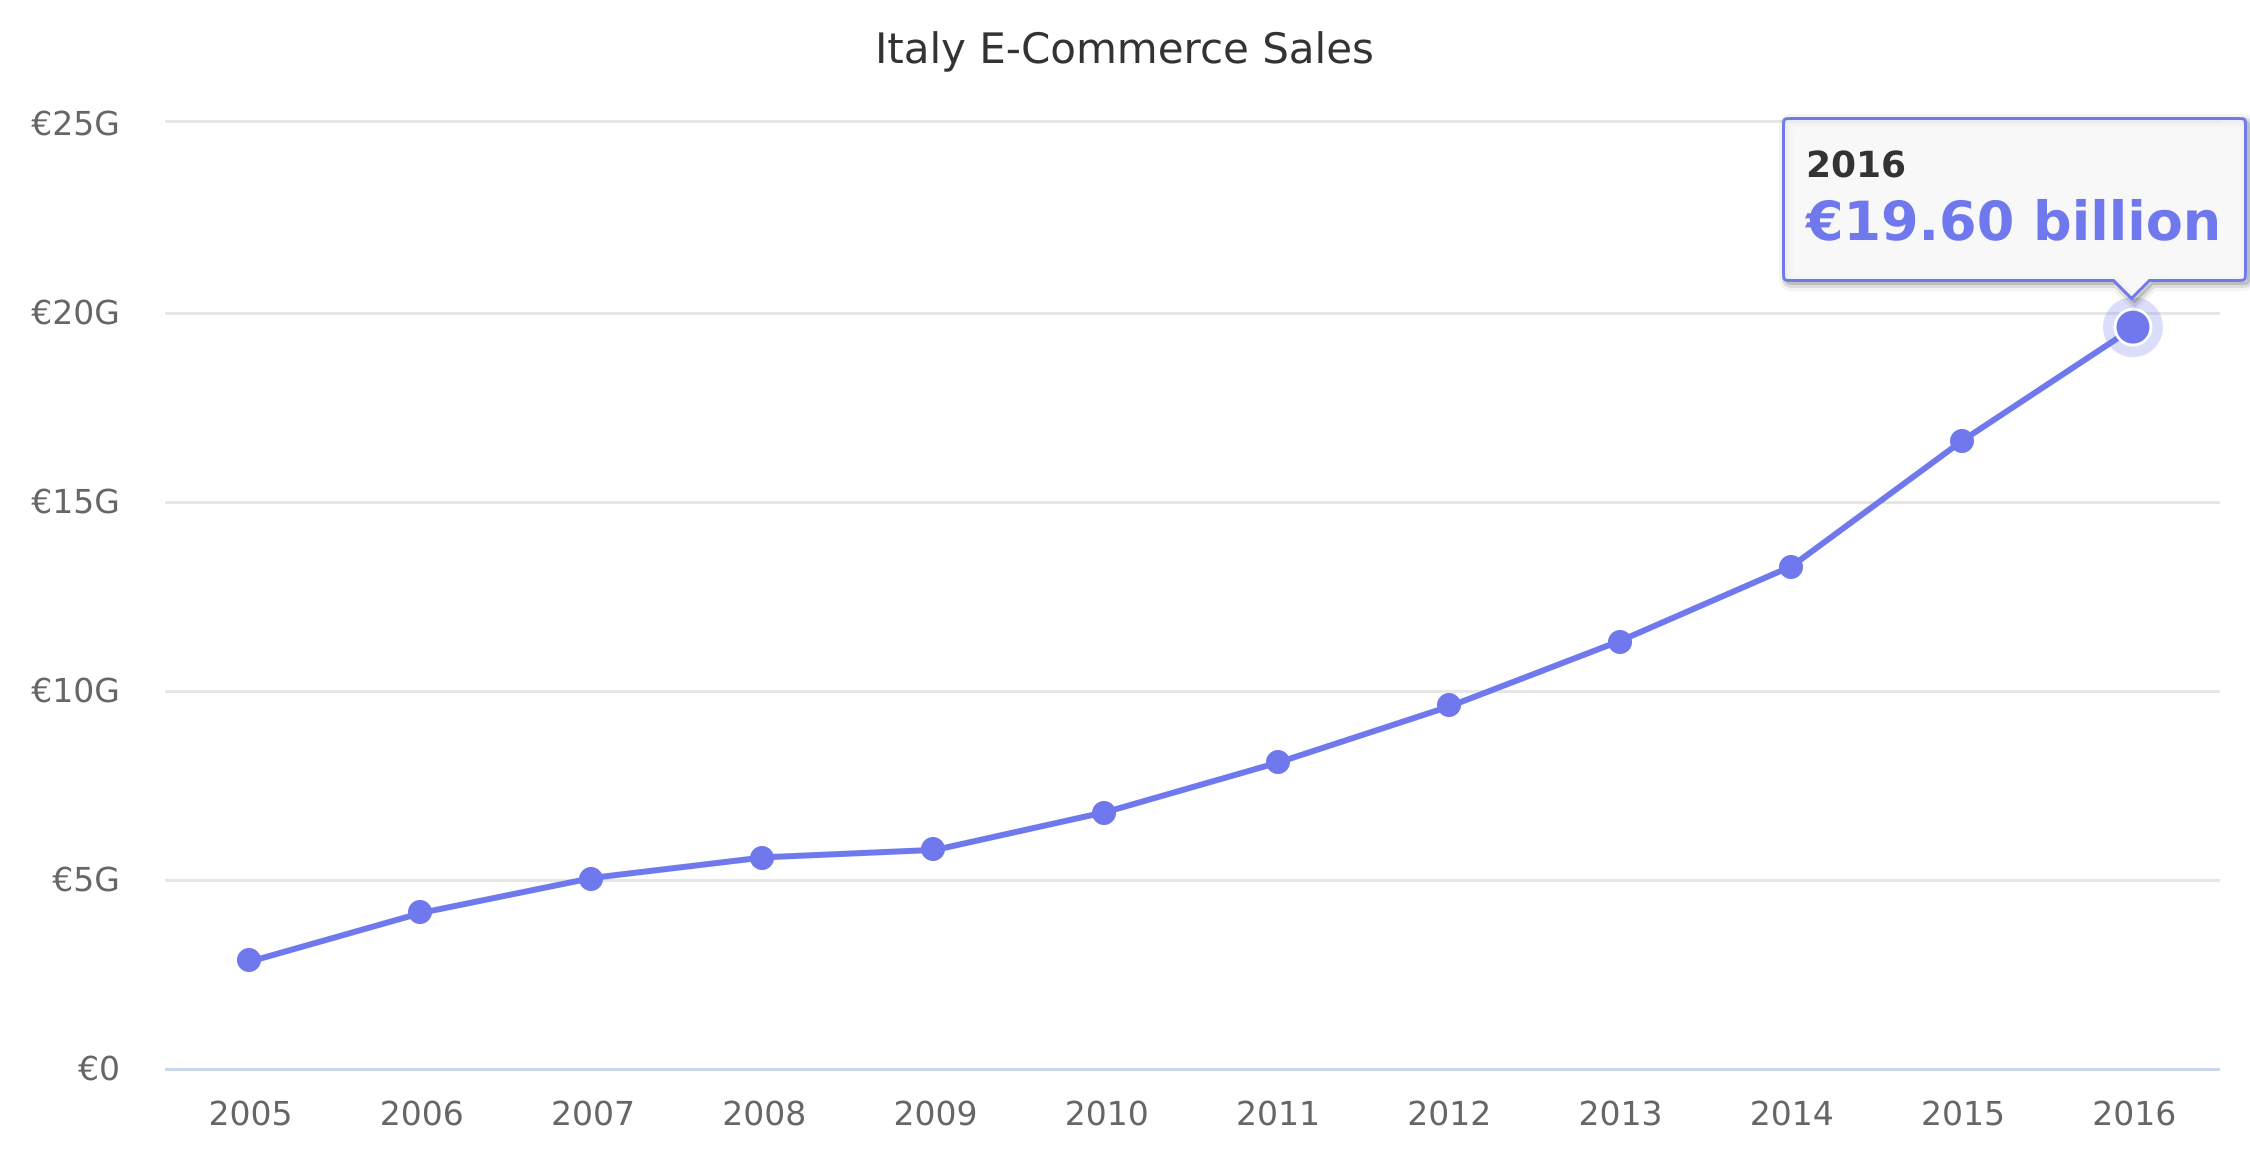 Italy E-Commerce Sales